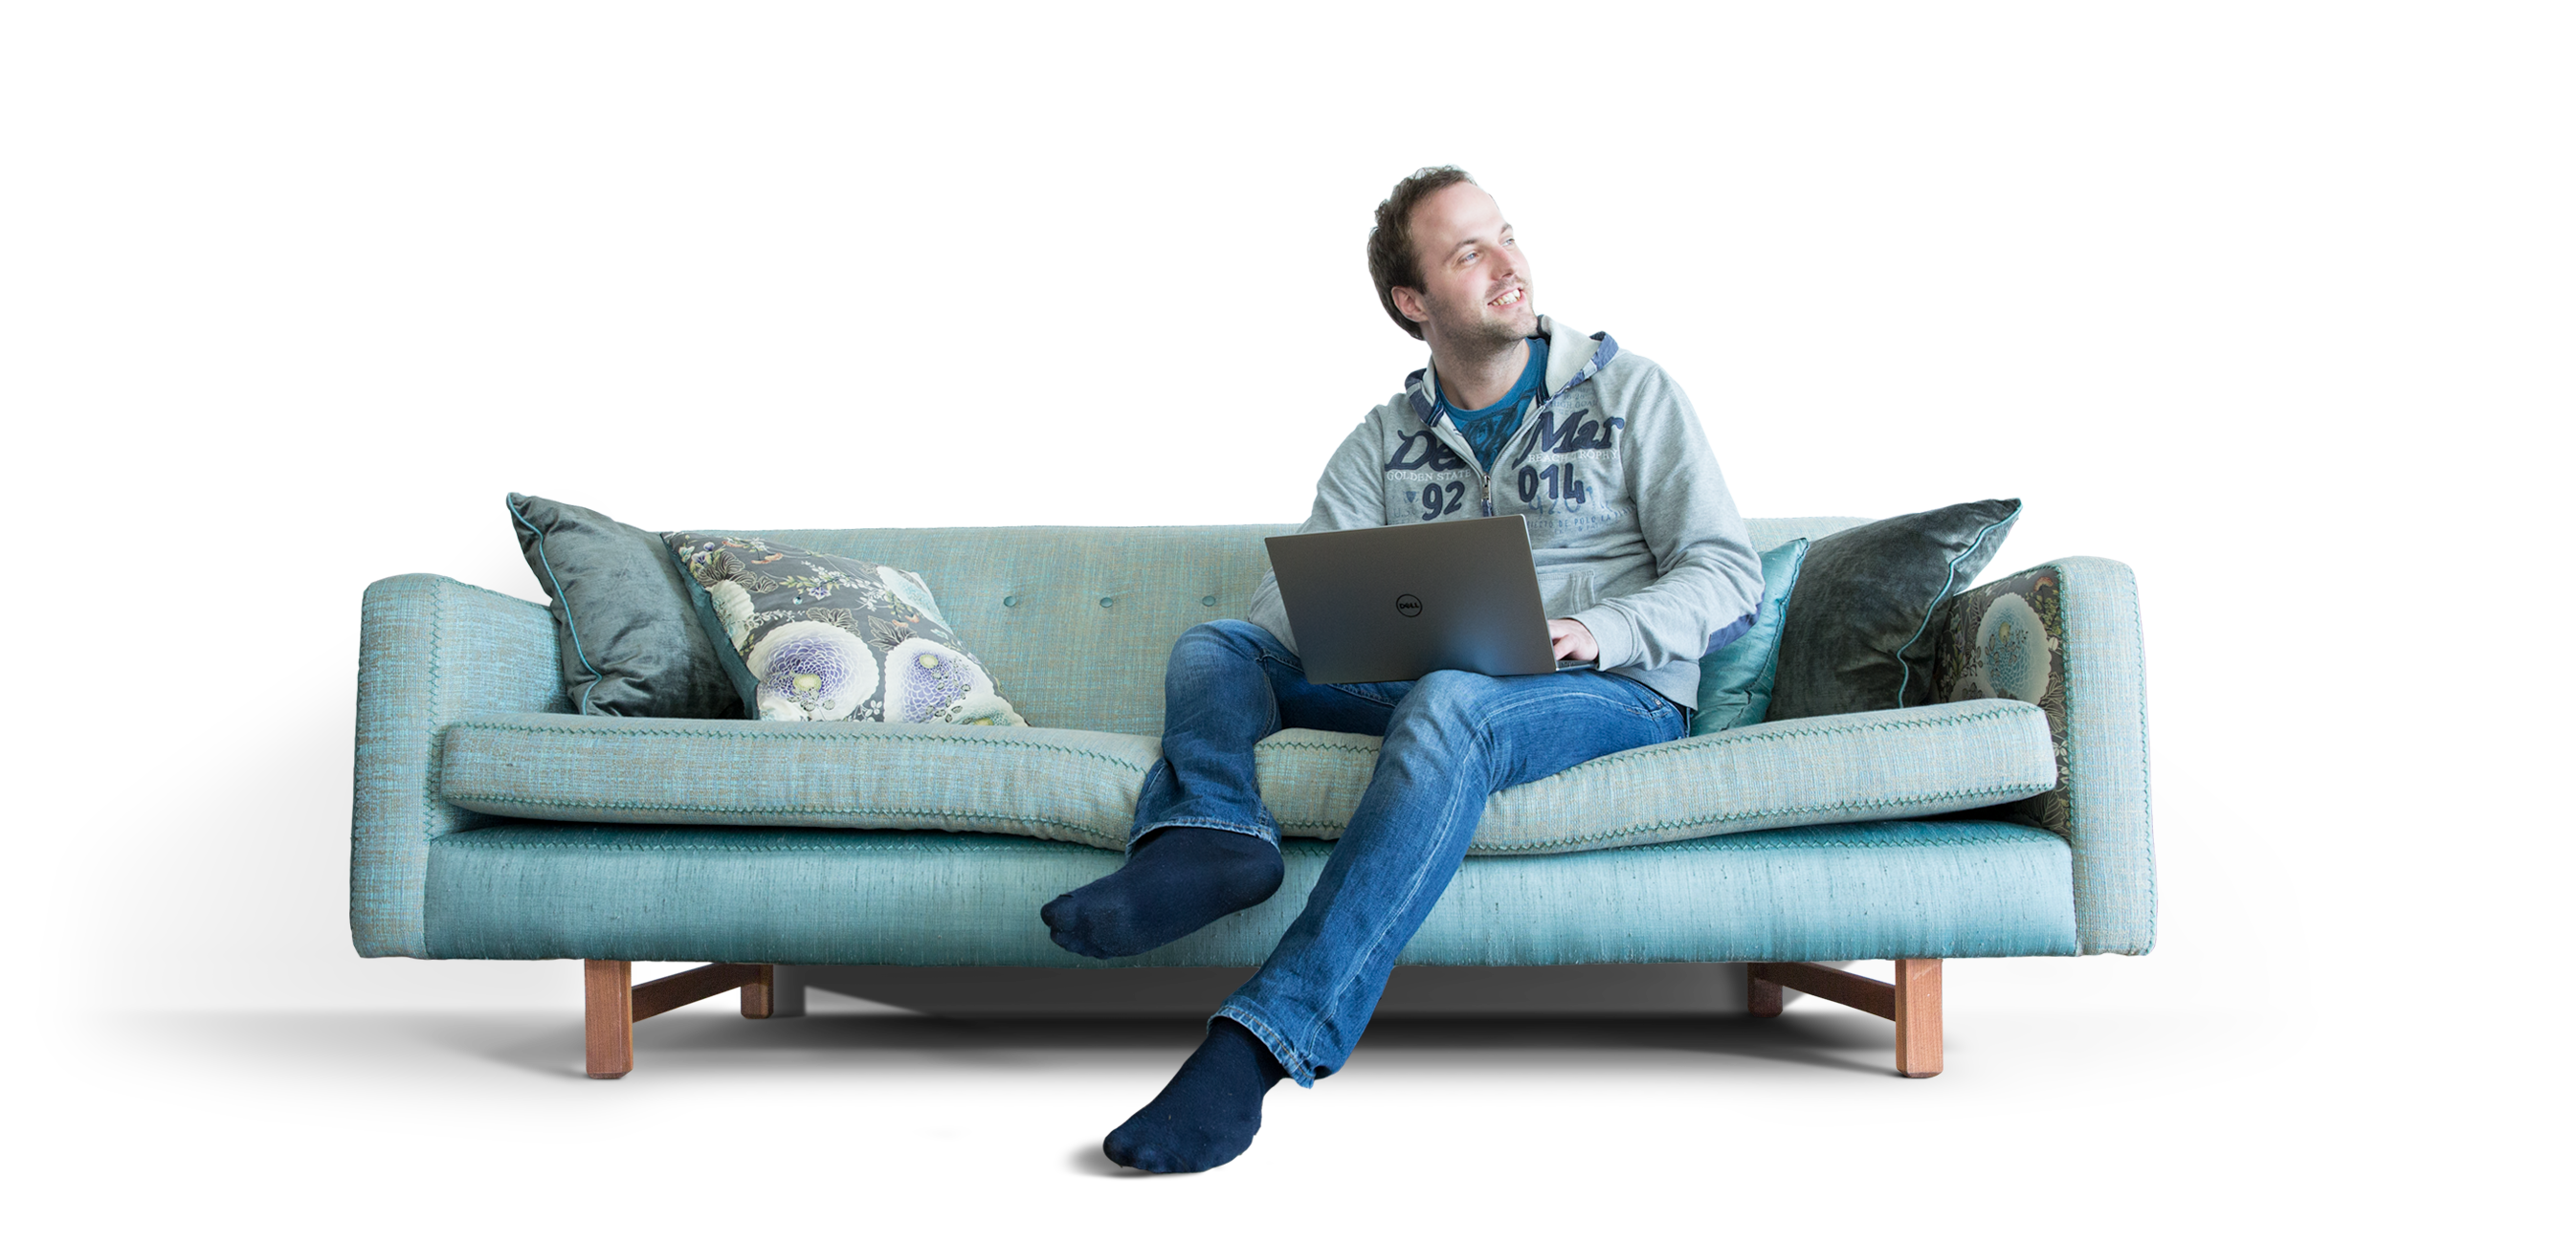 People sitting on a couch png. Table furniture sofa bed